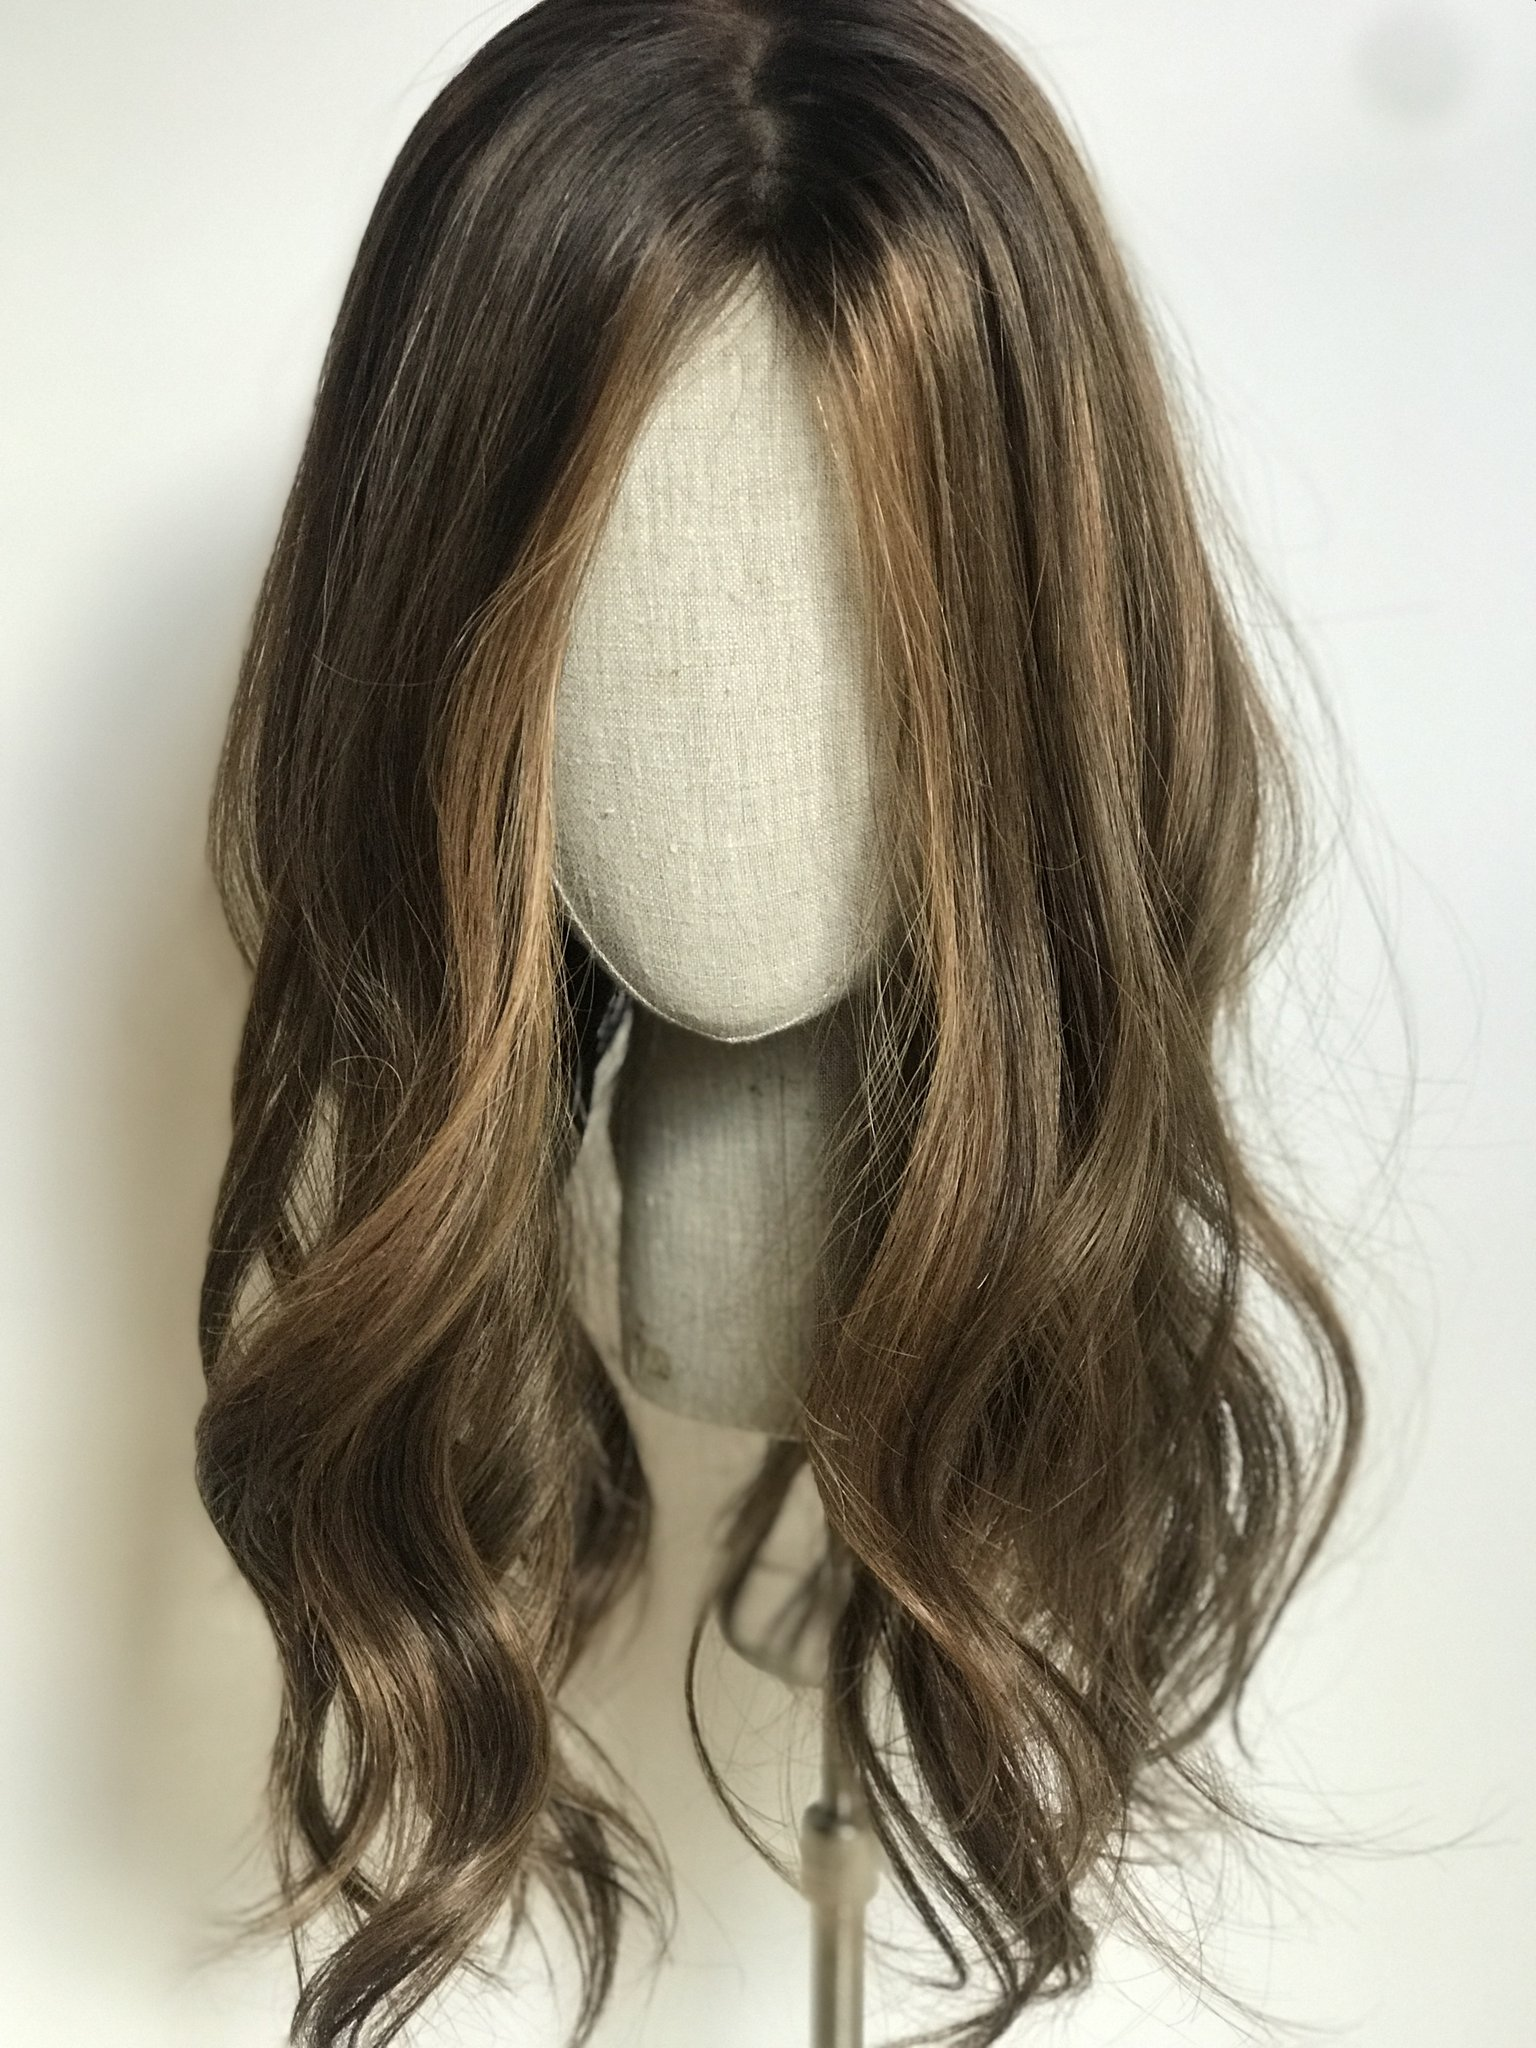 Qingdao Royalstyle Wigs Co.,Ltd Presents High Quality Natural Hair Wigs for Both Men & Women Customers